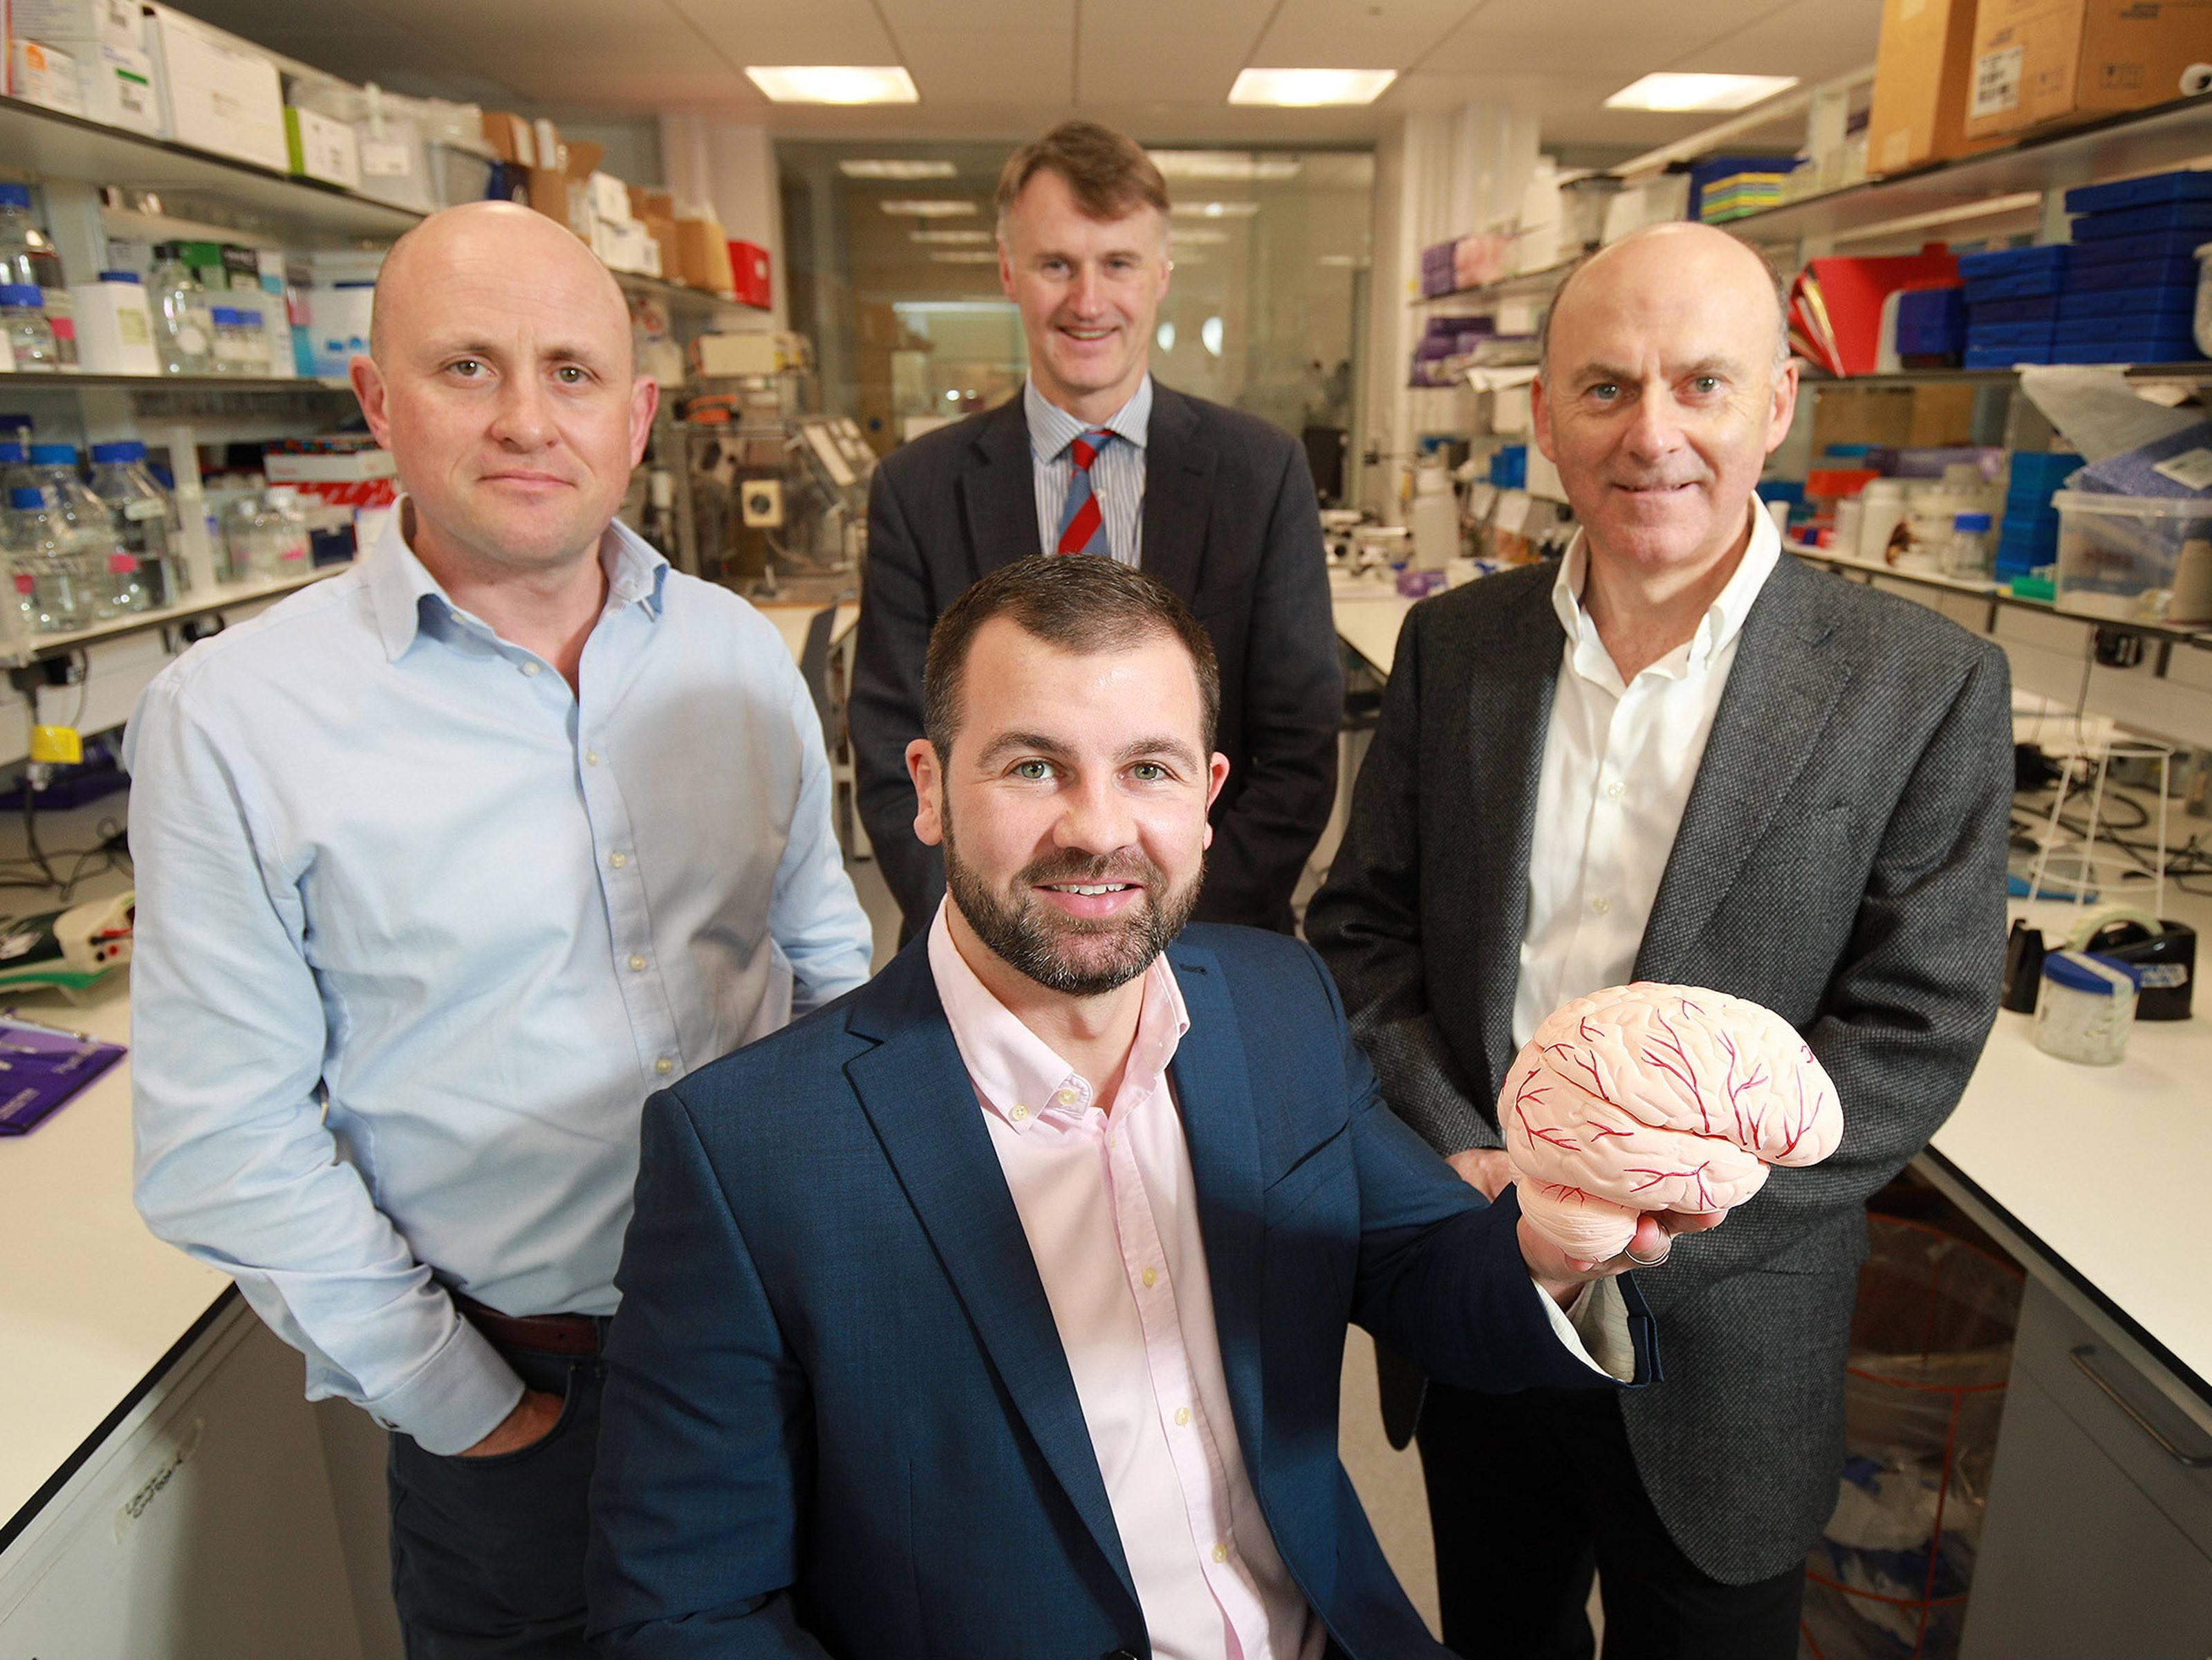 Four men in a research lab while man who is sitting holds up a model of the human brain.